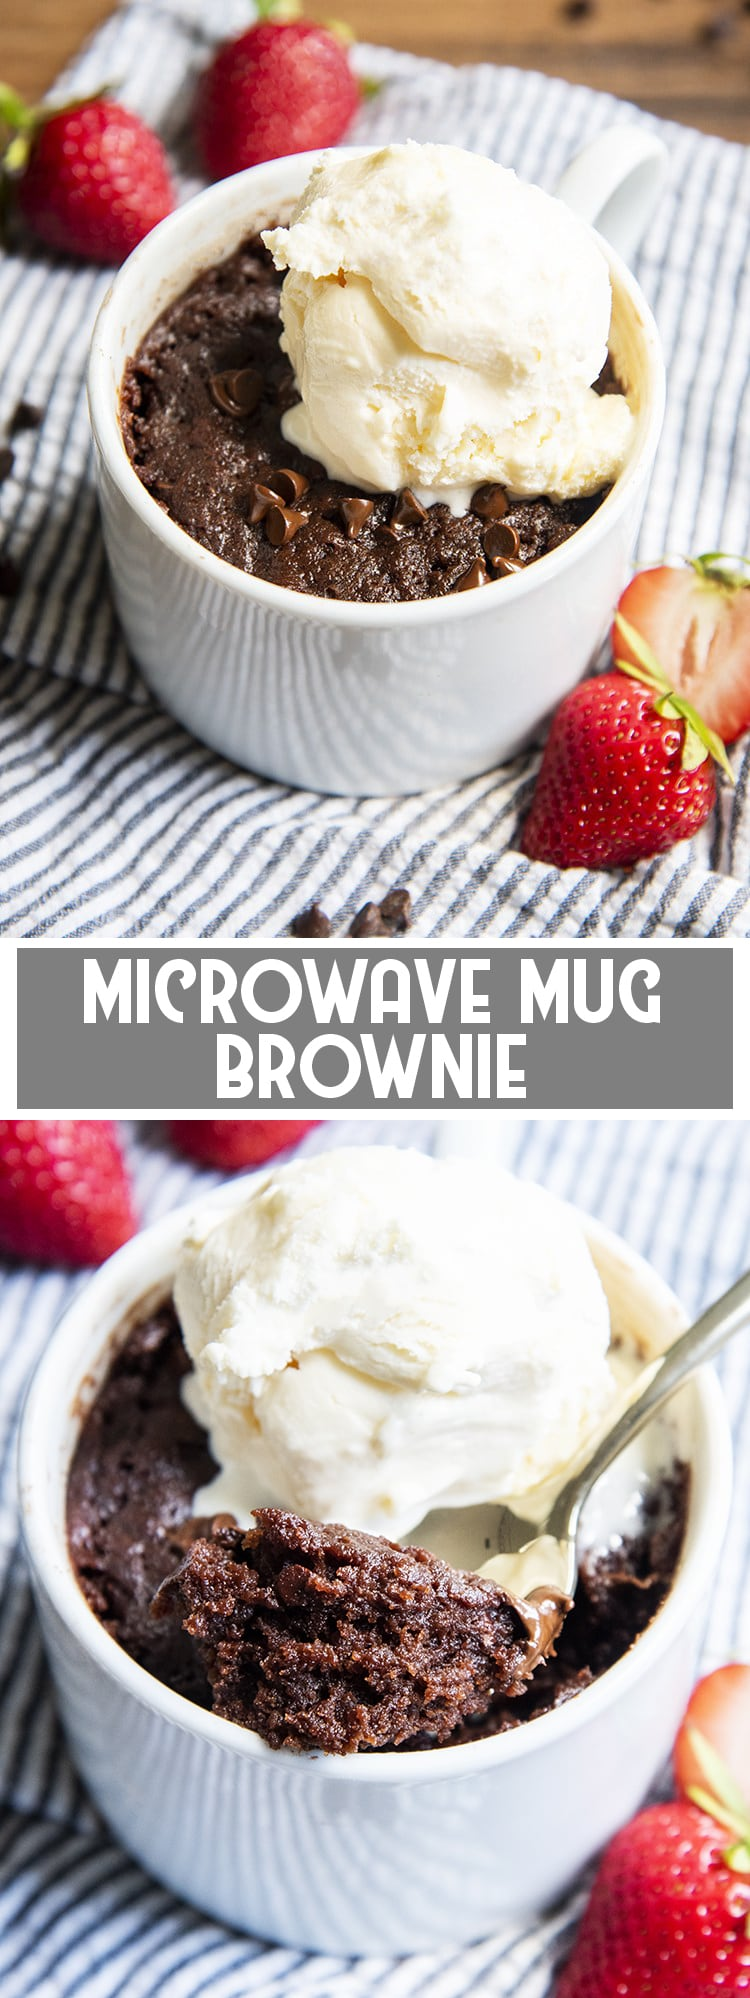 Chocolate Mug Brownie with Vanilla Ice cream on top with text overlay for pinterest